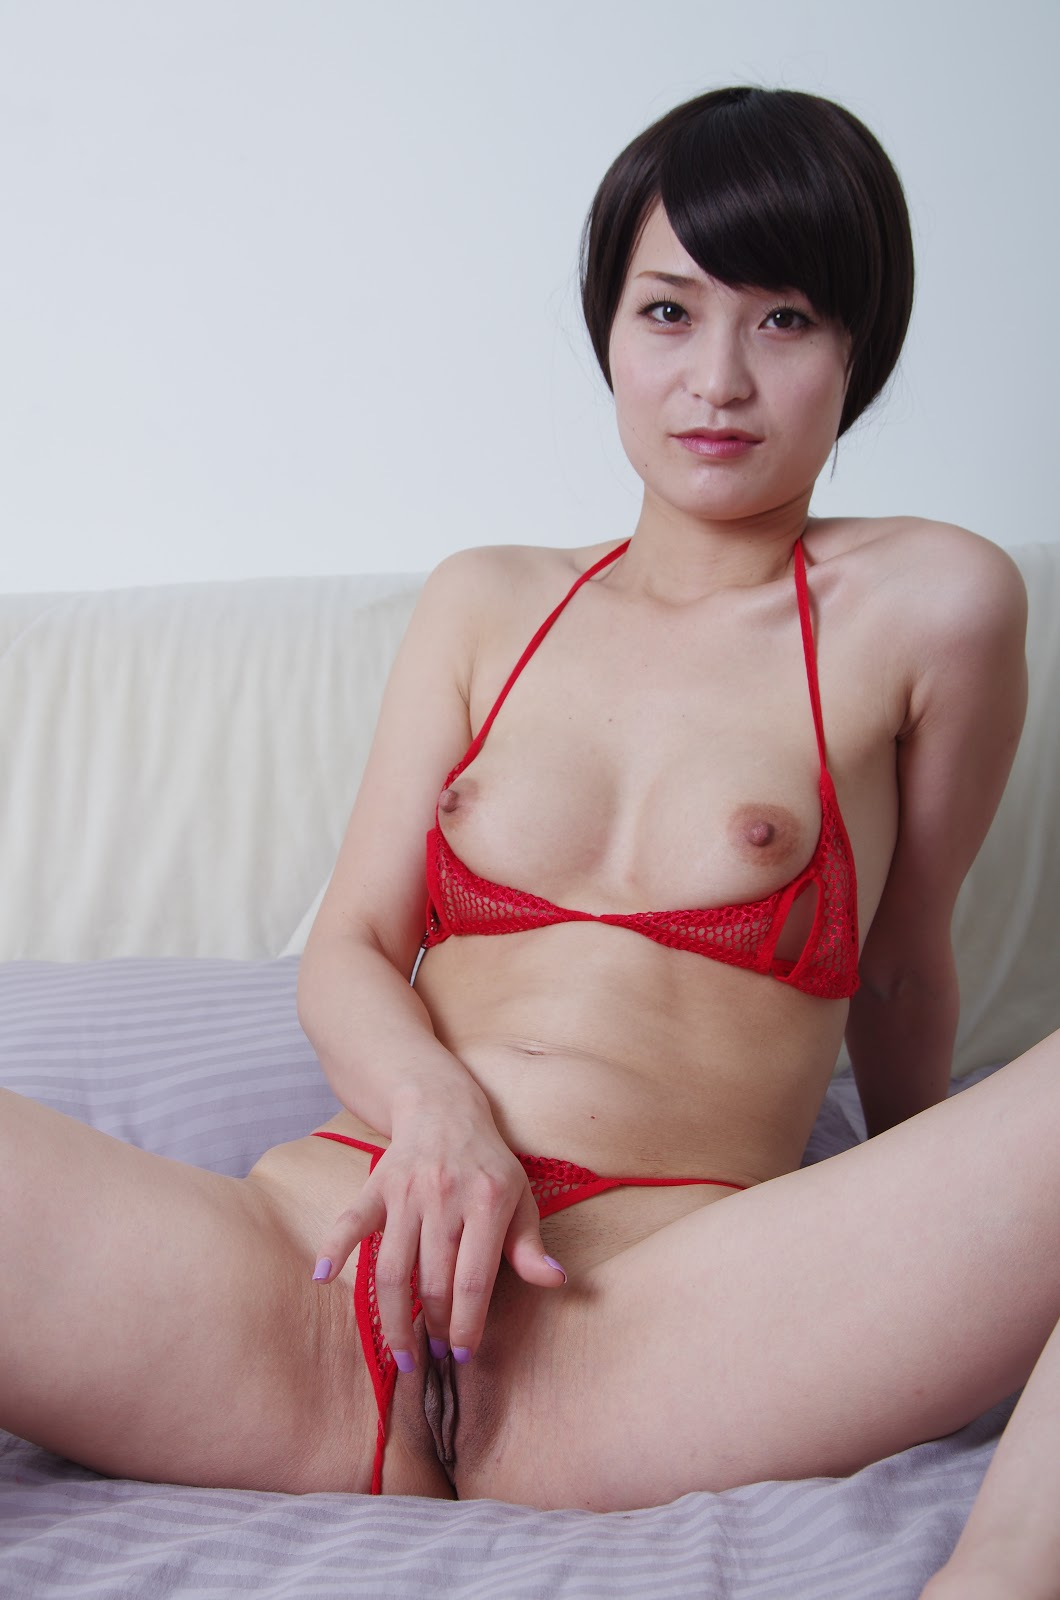 Chinese Nude_Art_Photos_-_298_-_YueYue.rar